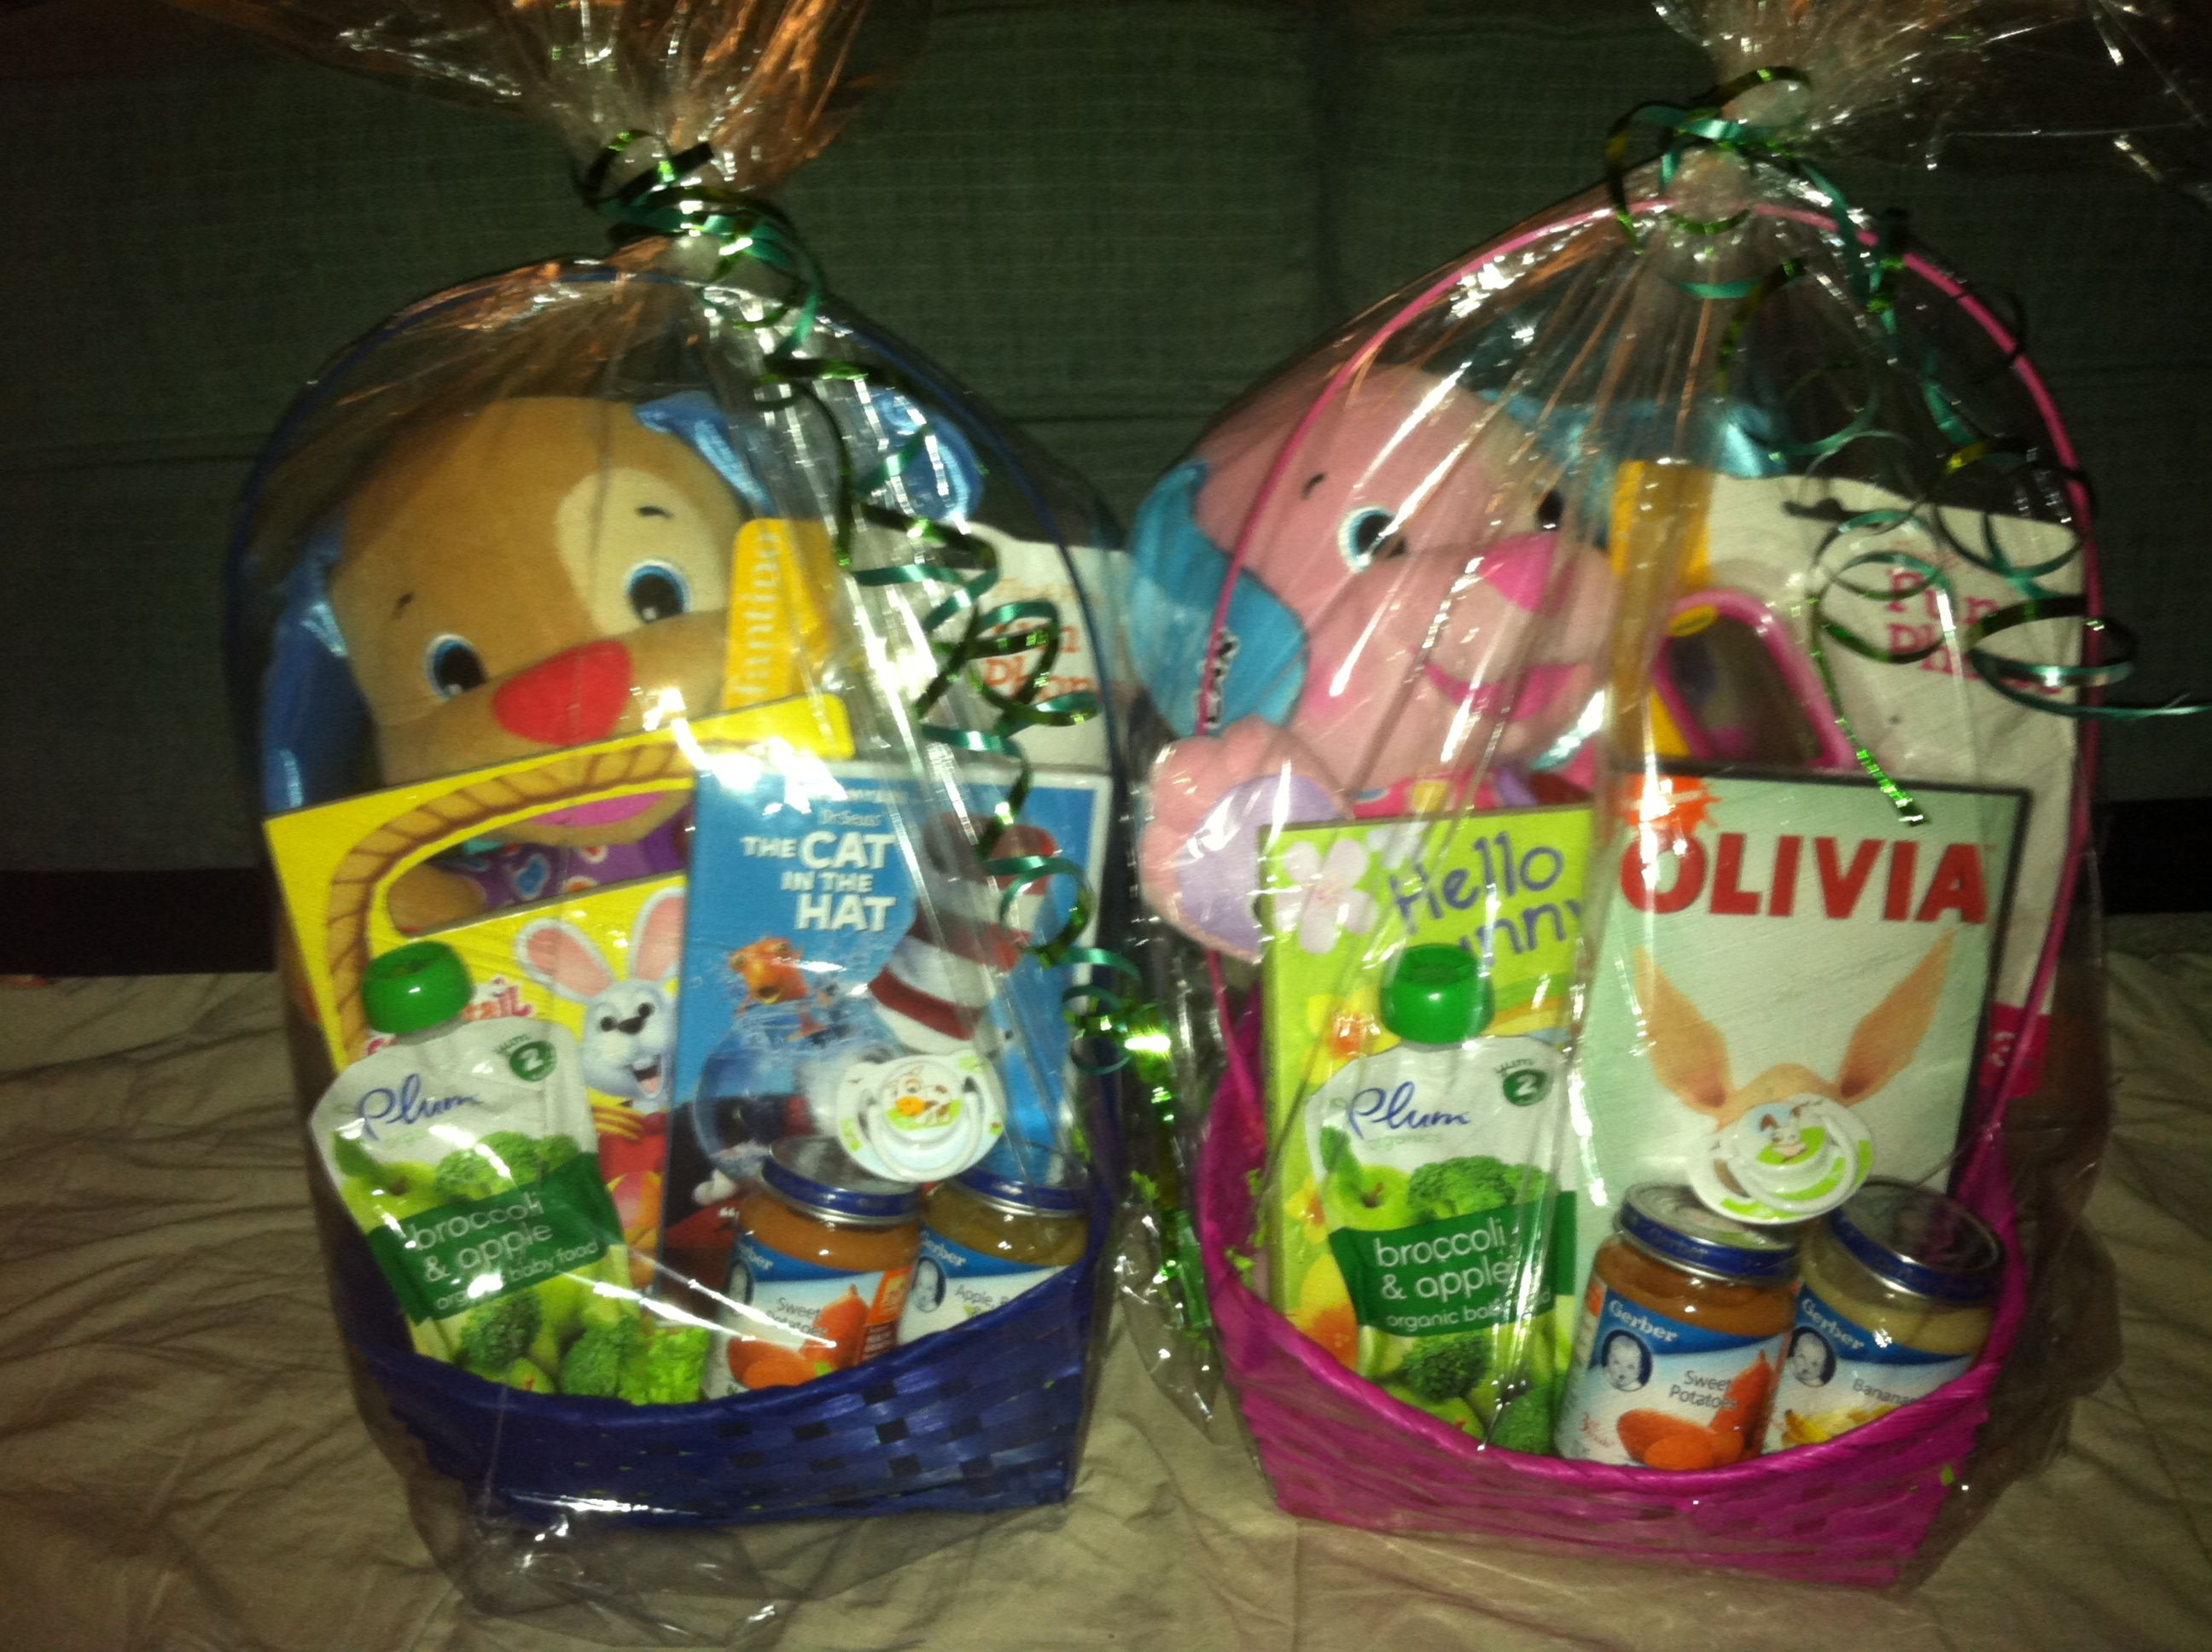 The twins first easter baskets easter baskets easter and twins easter basket for baby boy andor girl twins 9 months old negle Image collections